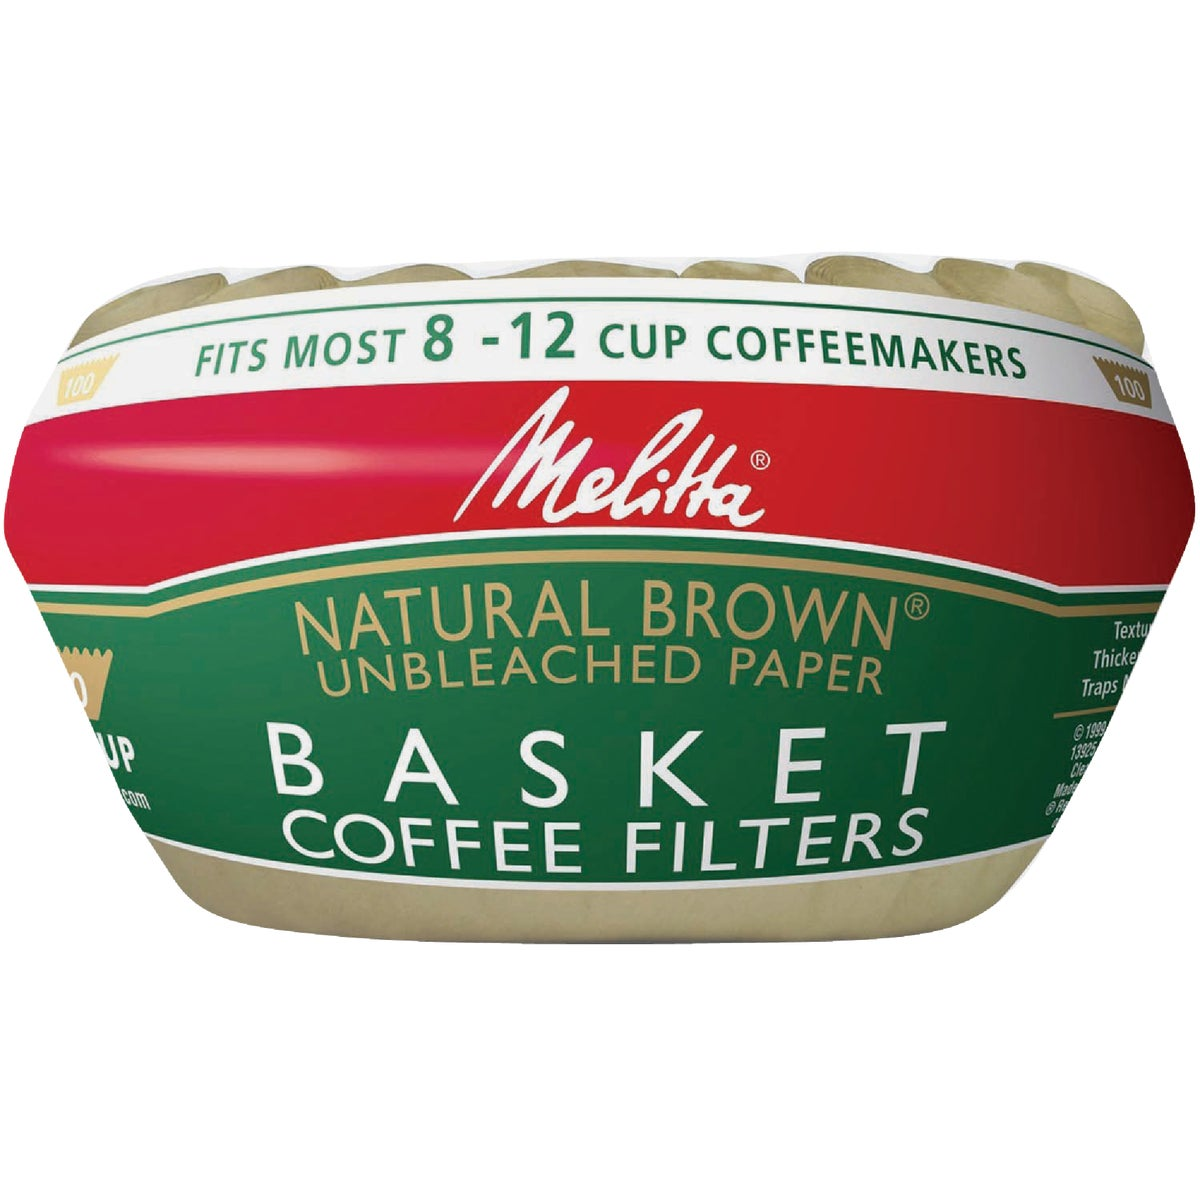 BROWN COFFEE FILTER - 629092 by Melitta U S A Inc